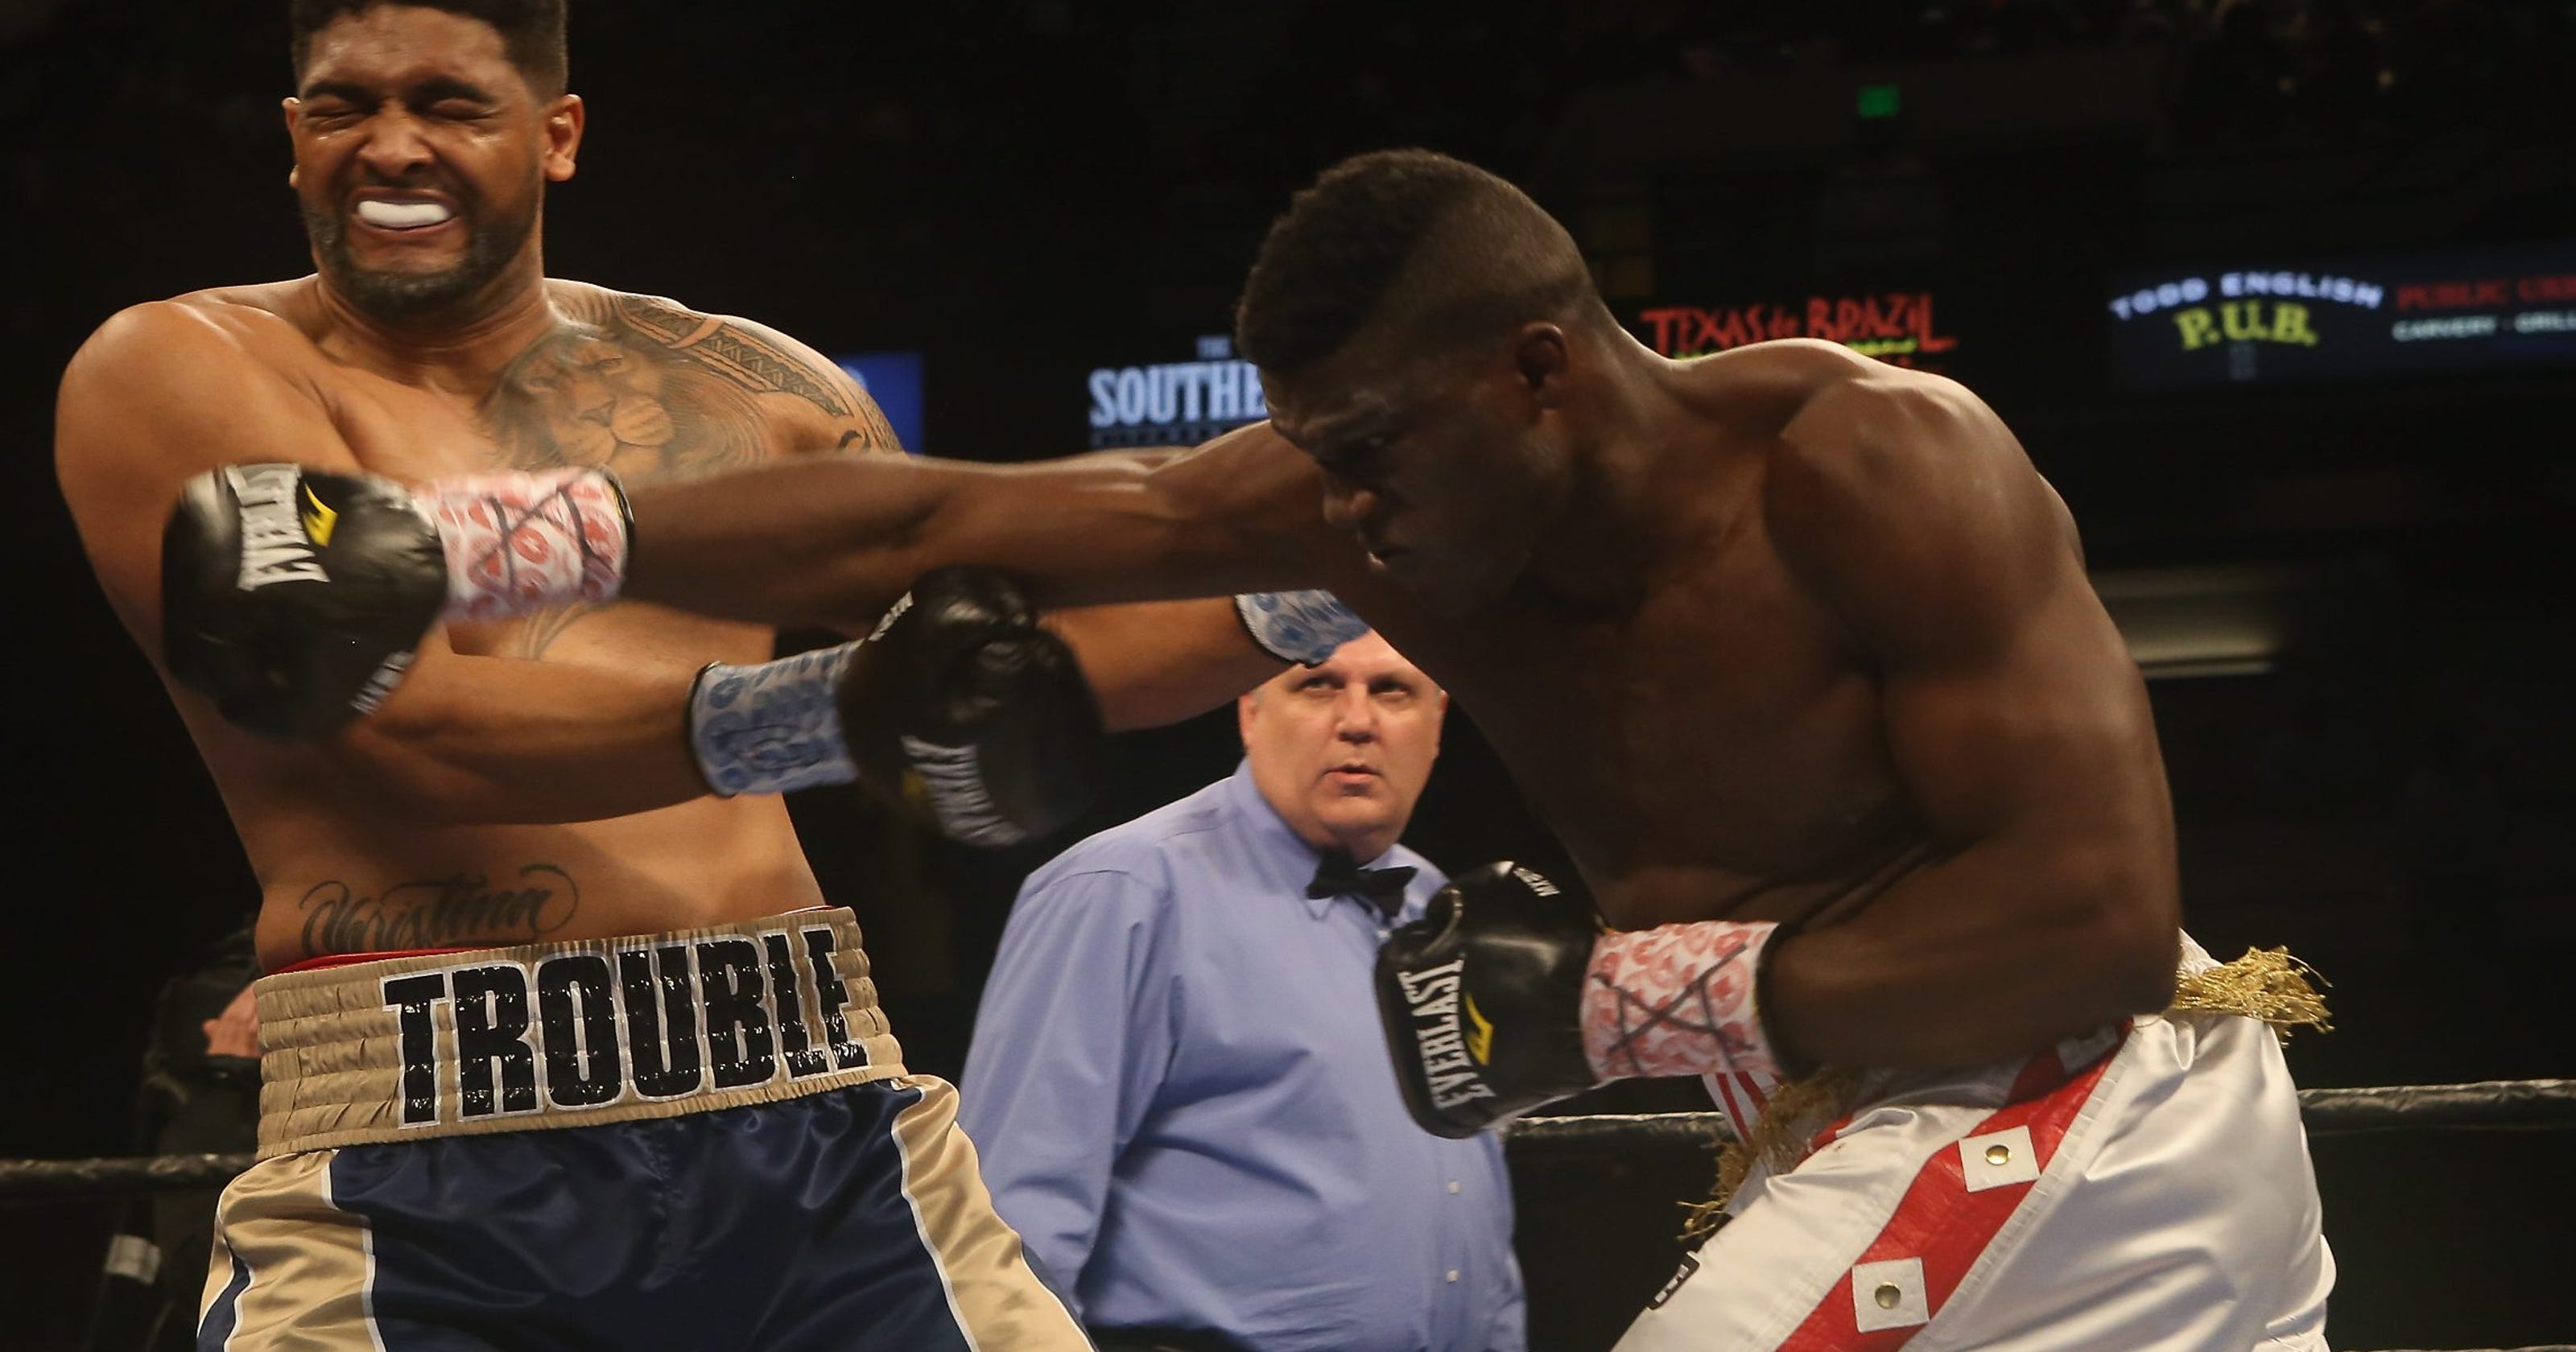 Deontay Wilder Dominic Breazeale Address Post Fight Altercation On